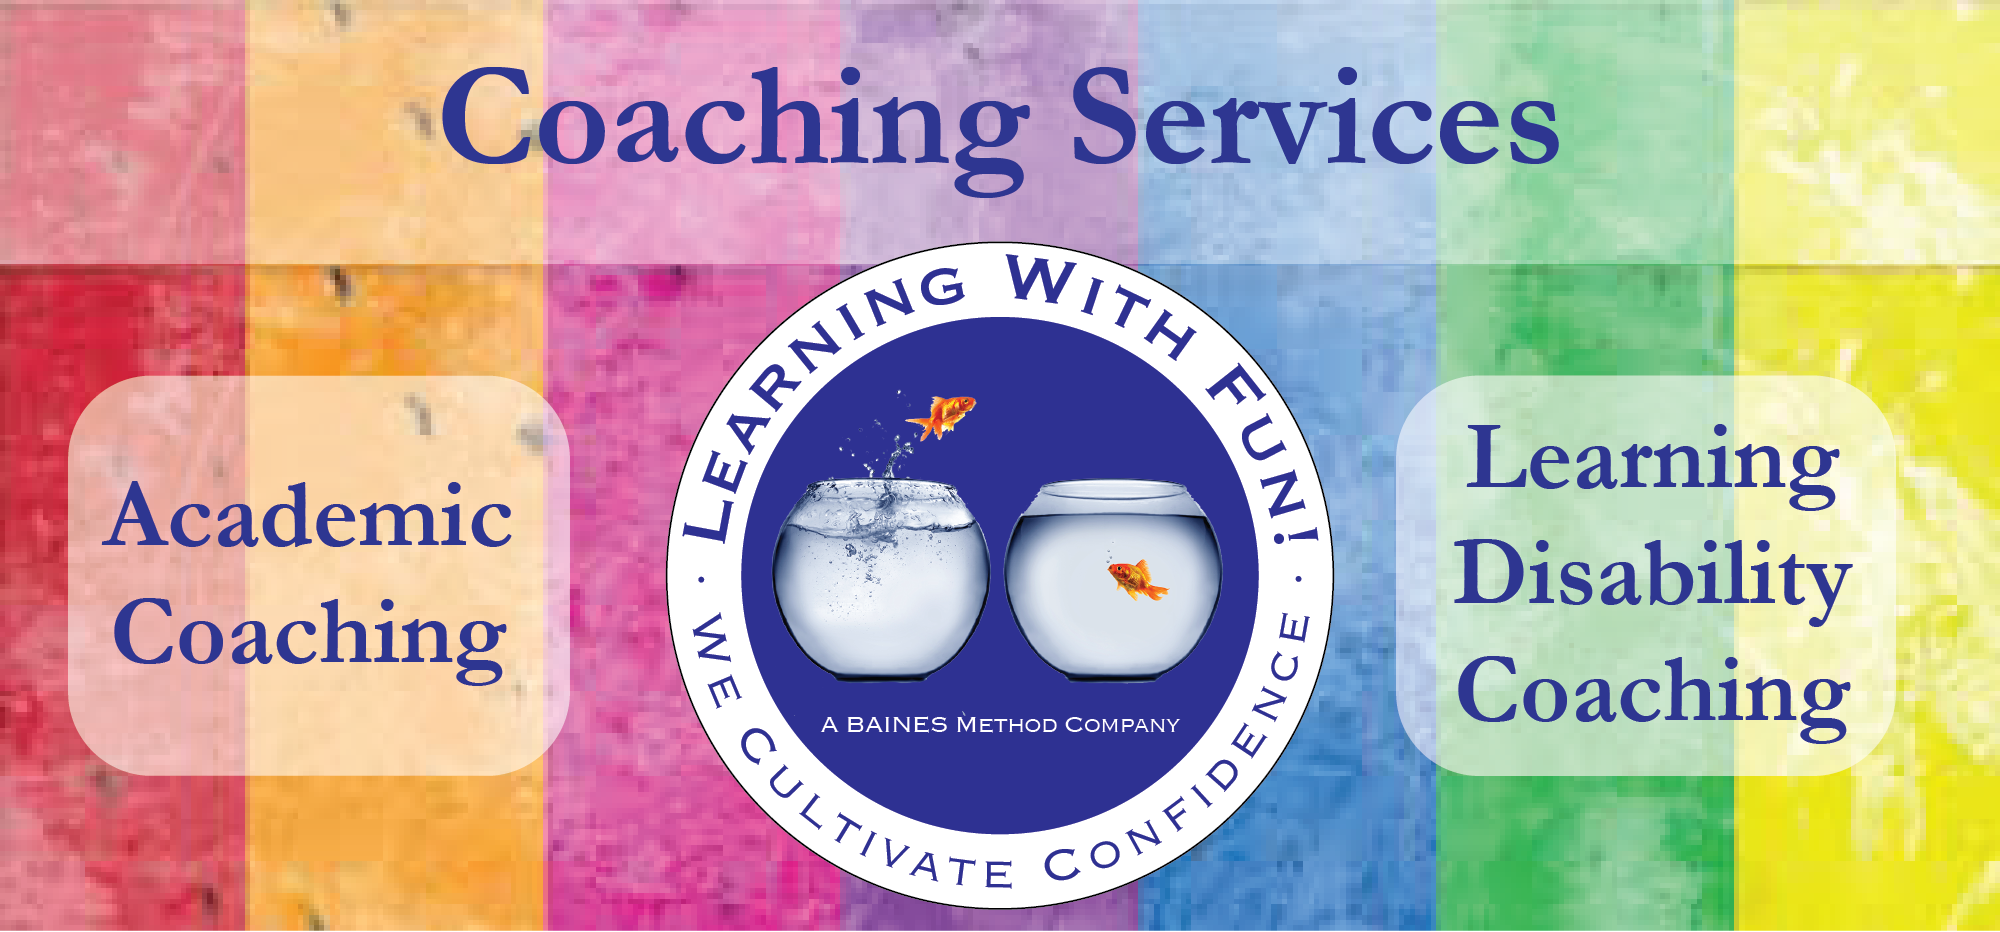 Academic Coaching In Action >> Coaching Service Overview Learning With Fun